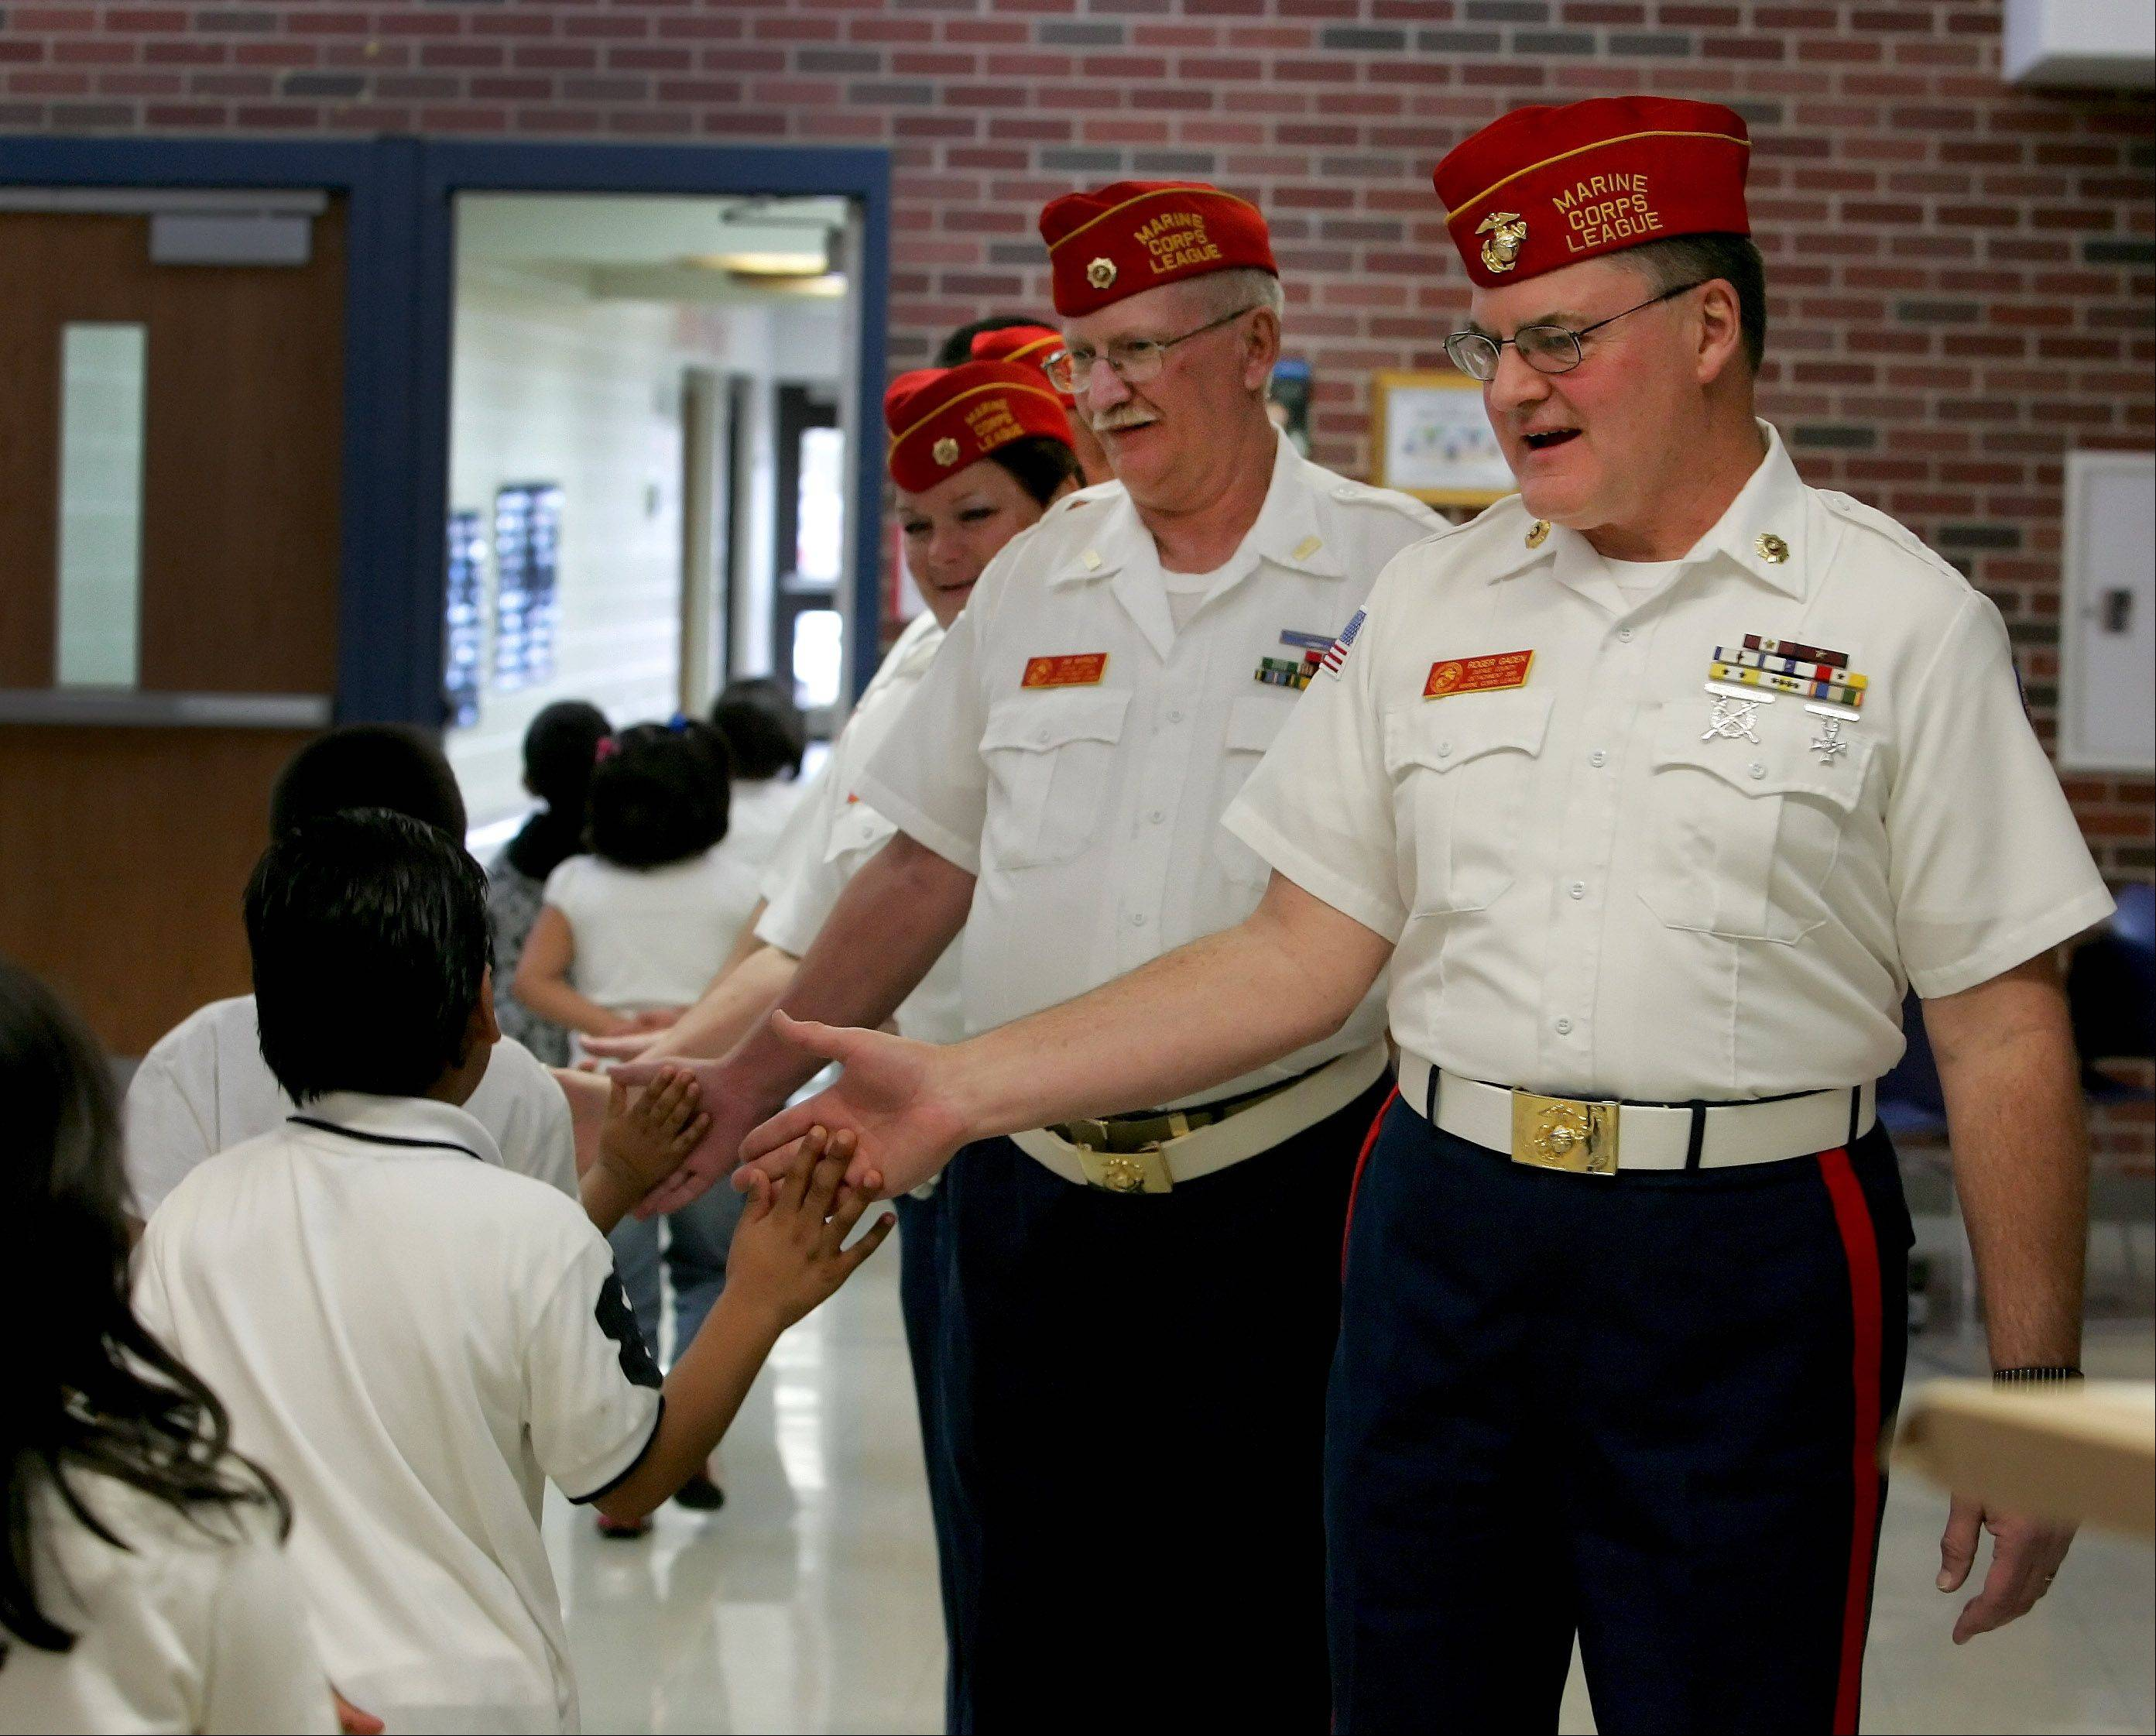 Jim Myrick, left, and Roger Gaden, right, with DuPage County Marines, Detachment 399, greet students at a Veterans Day program at Johnson Elementary School in Warrenville.